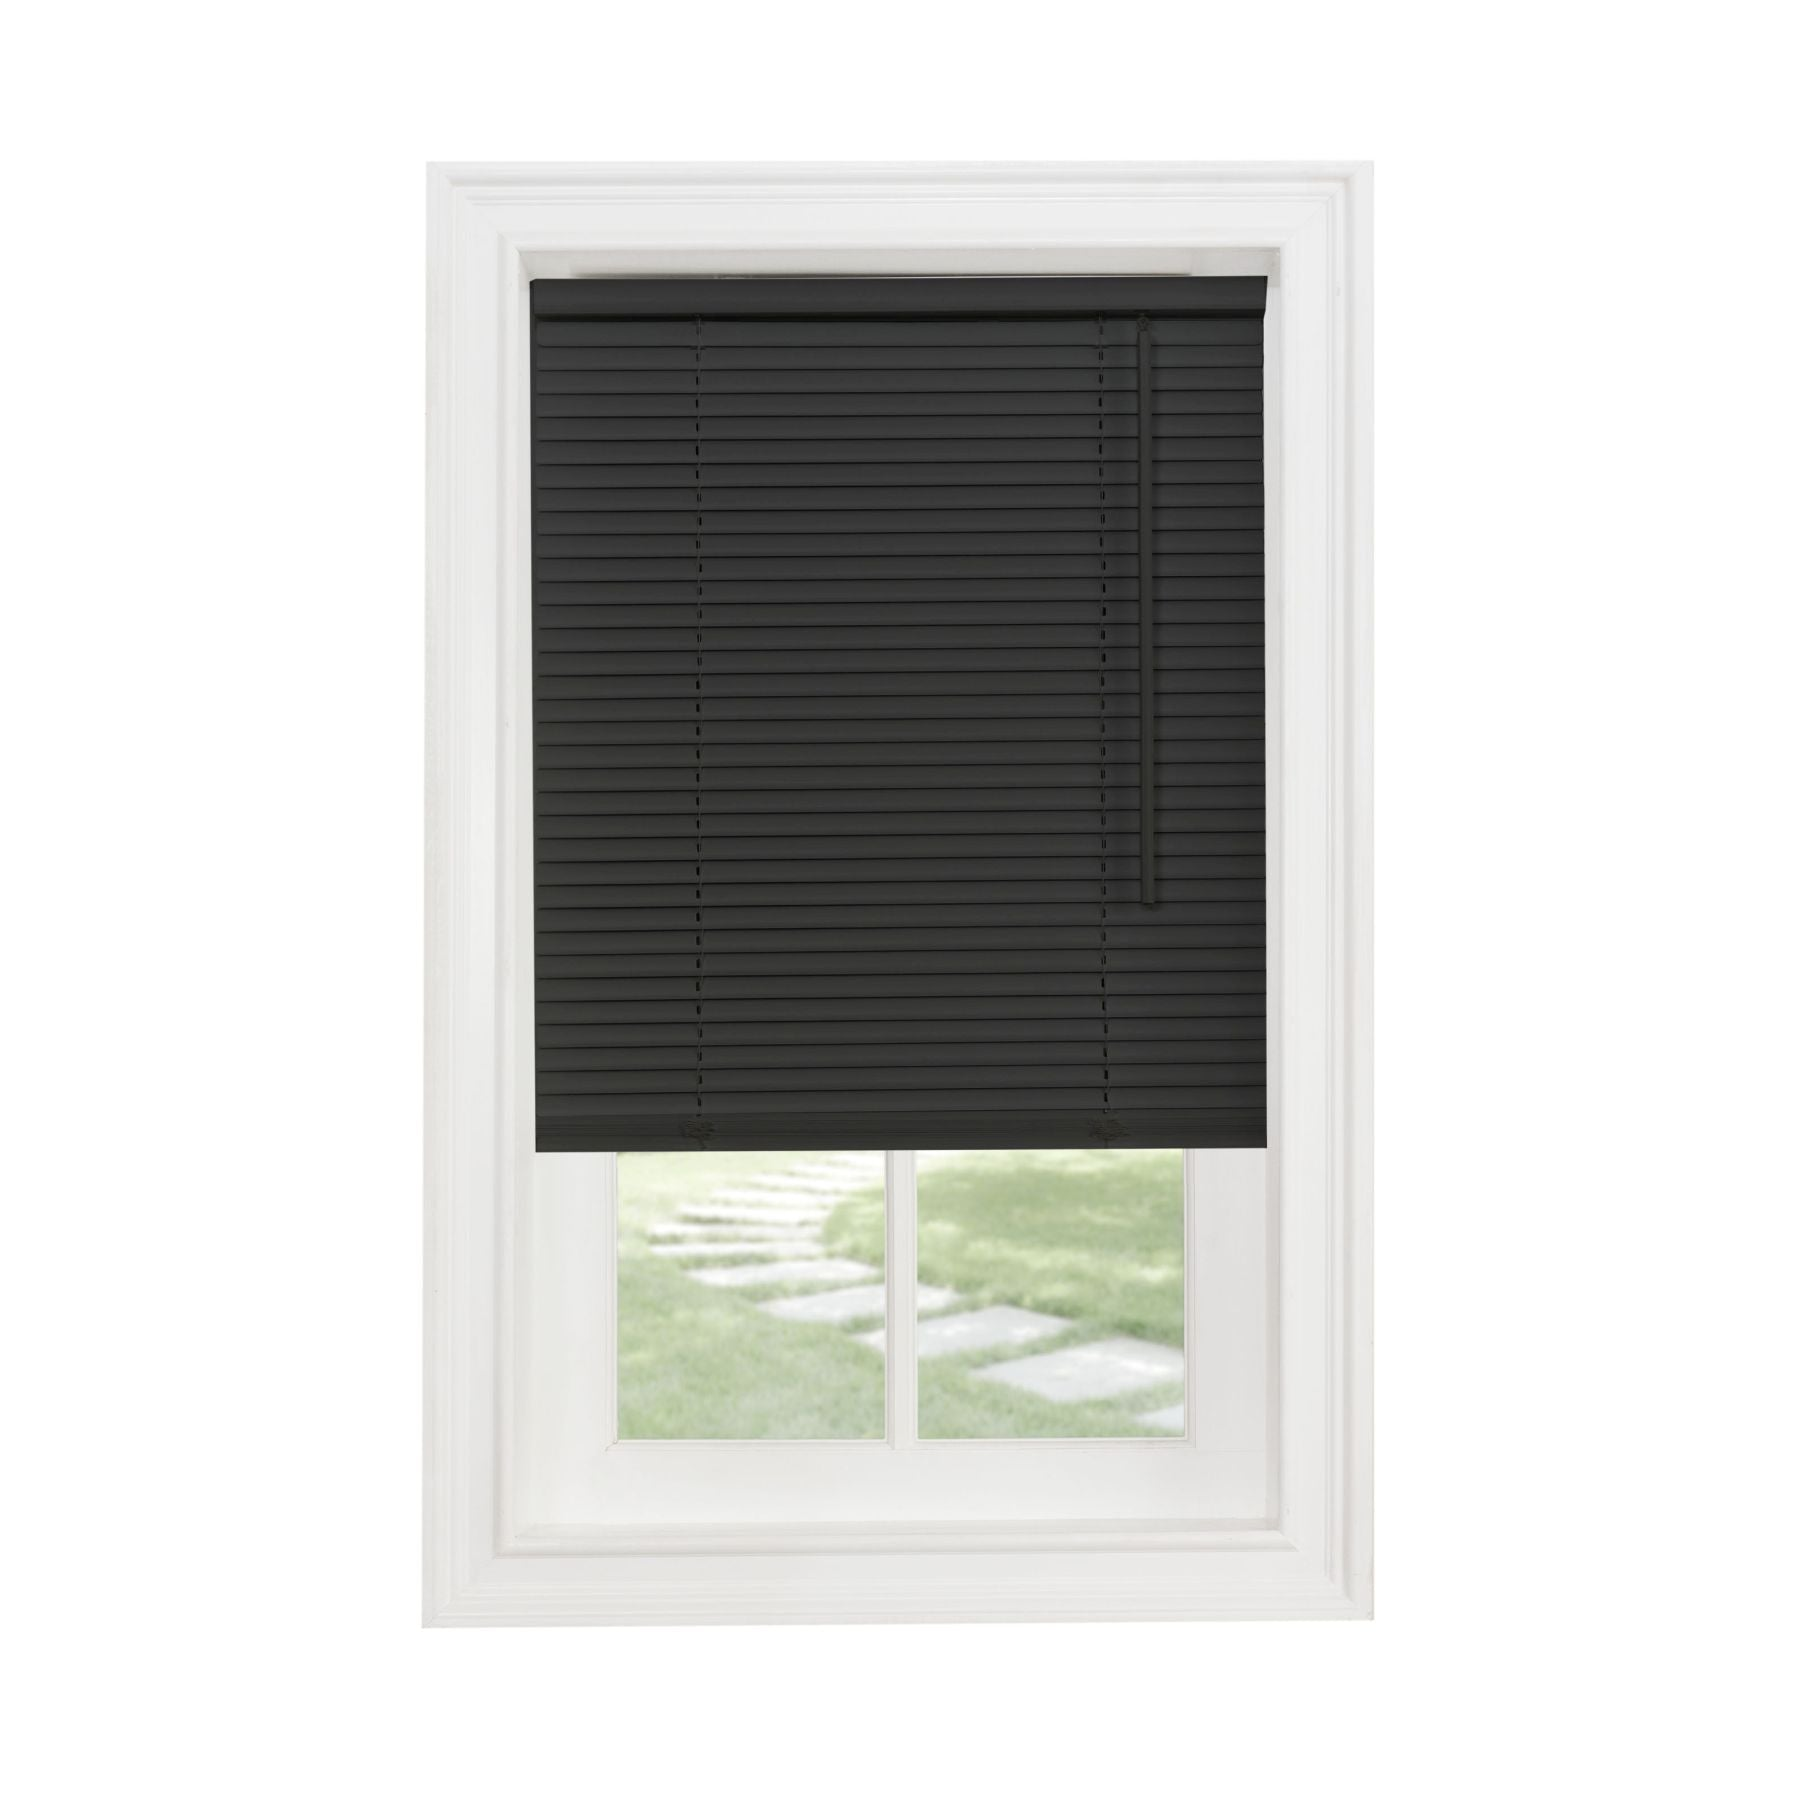 "Traditional Elegance Cordless Sunrise 1"" Light Filtering Mini Blind 29x64 - Black"